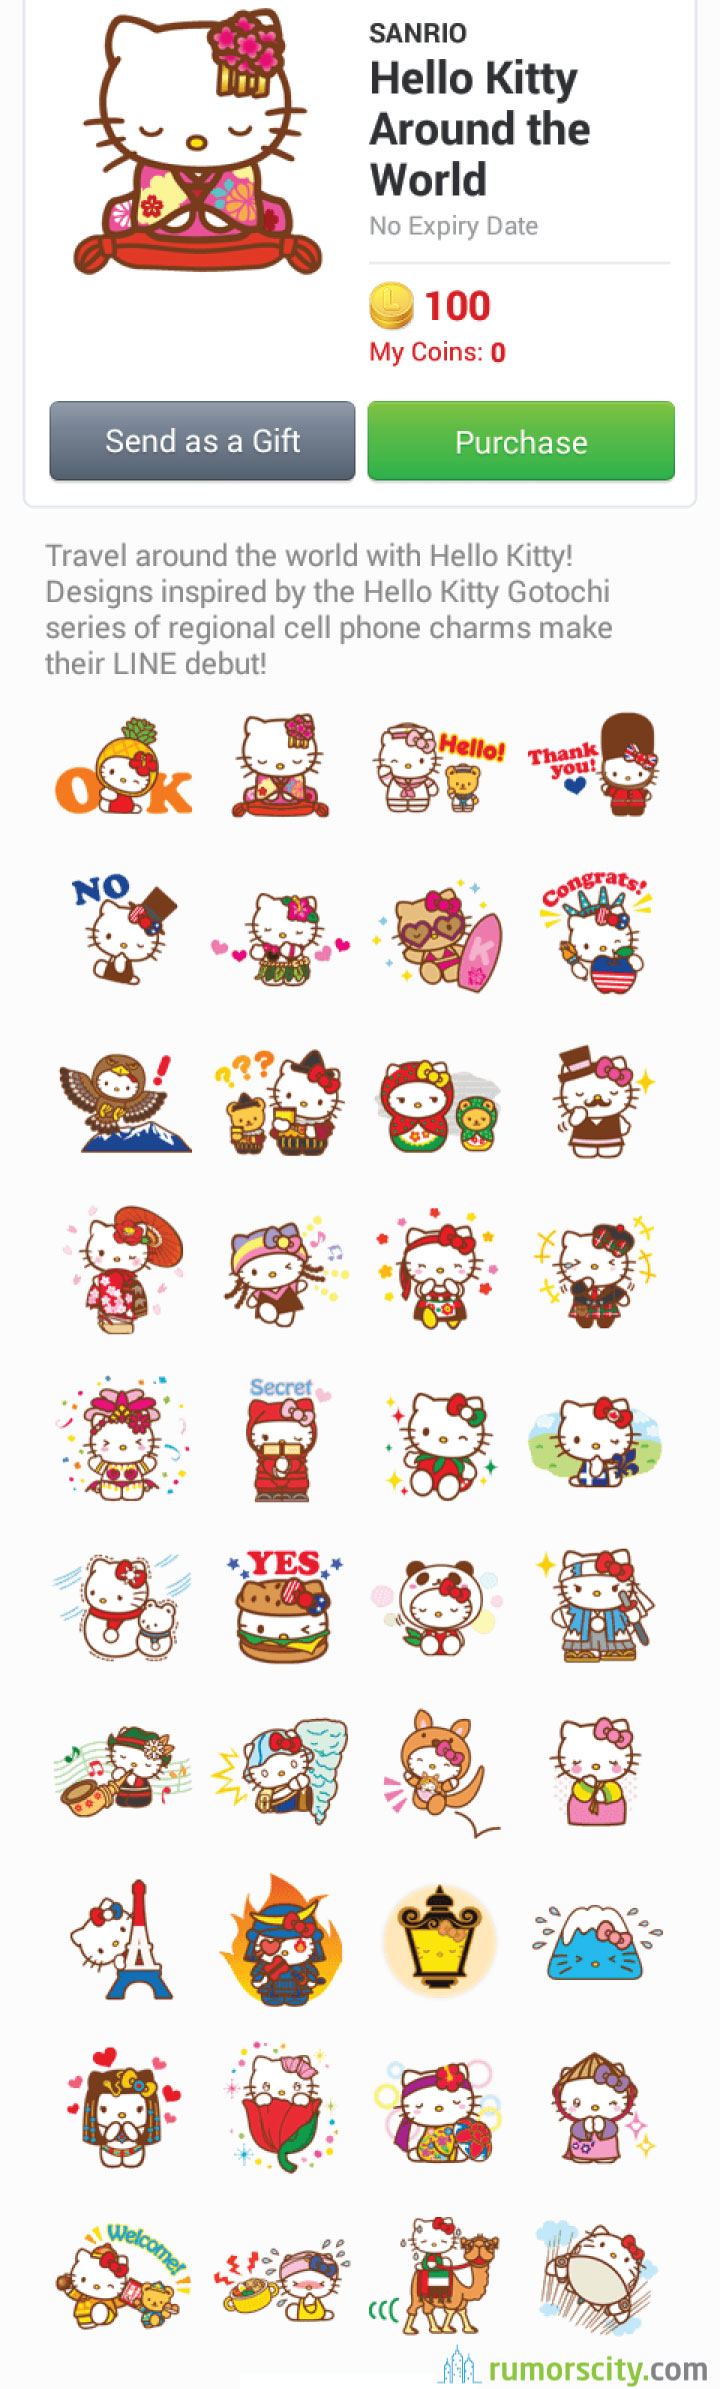 Hello-Kitty-Around-the-World-Line-sticker-in-Thailand-Paid-02